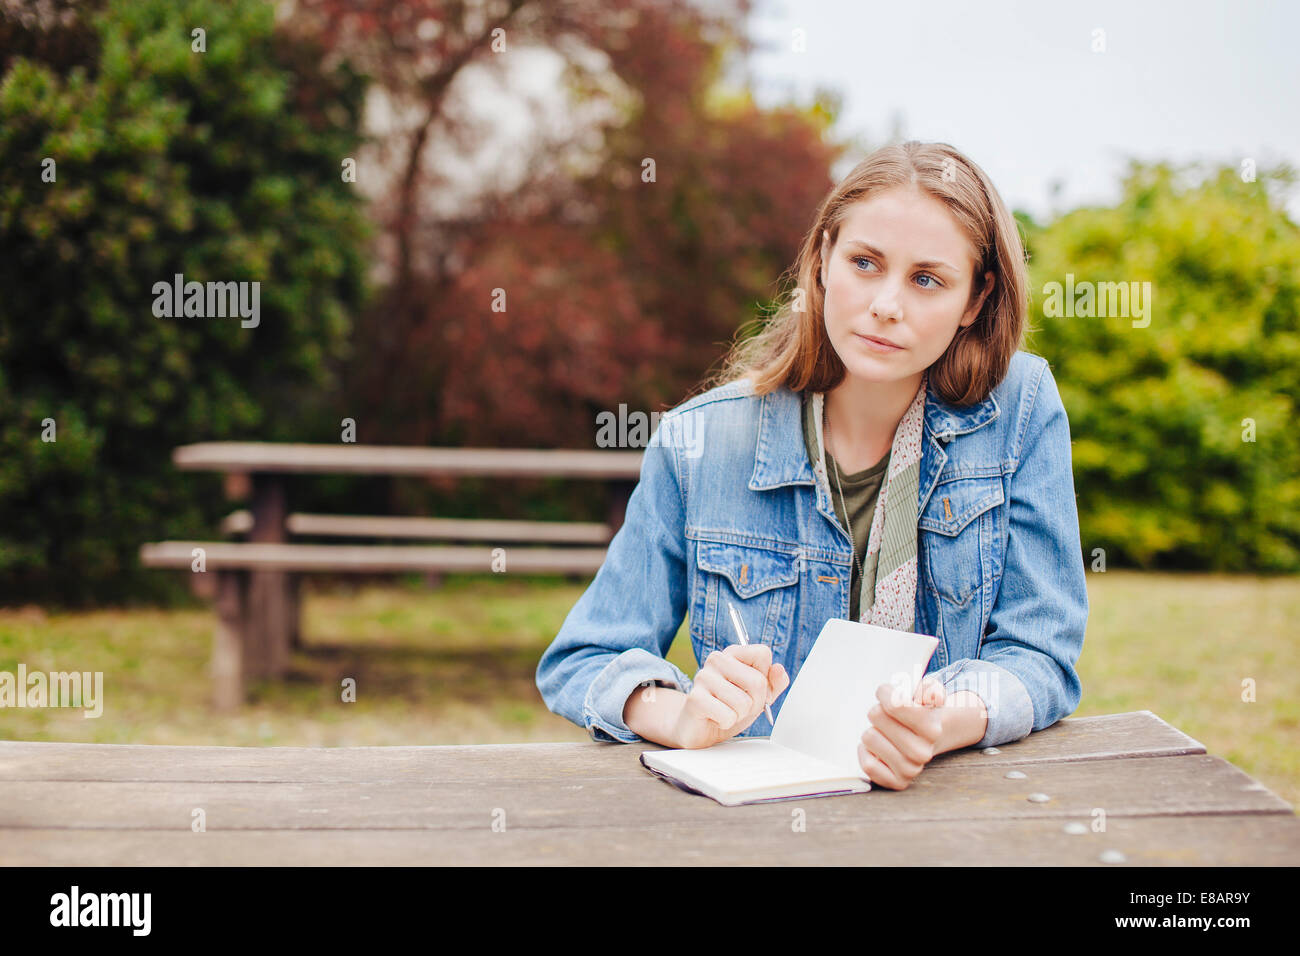 Young woman sitting at picnic bench in park writing in notebook - Stock Image